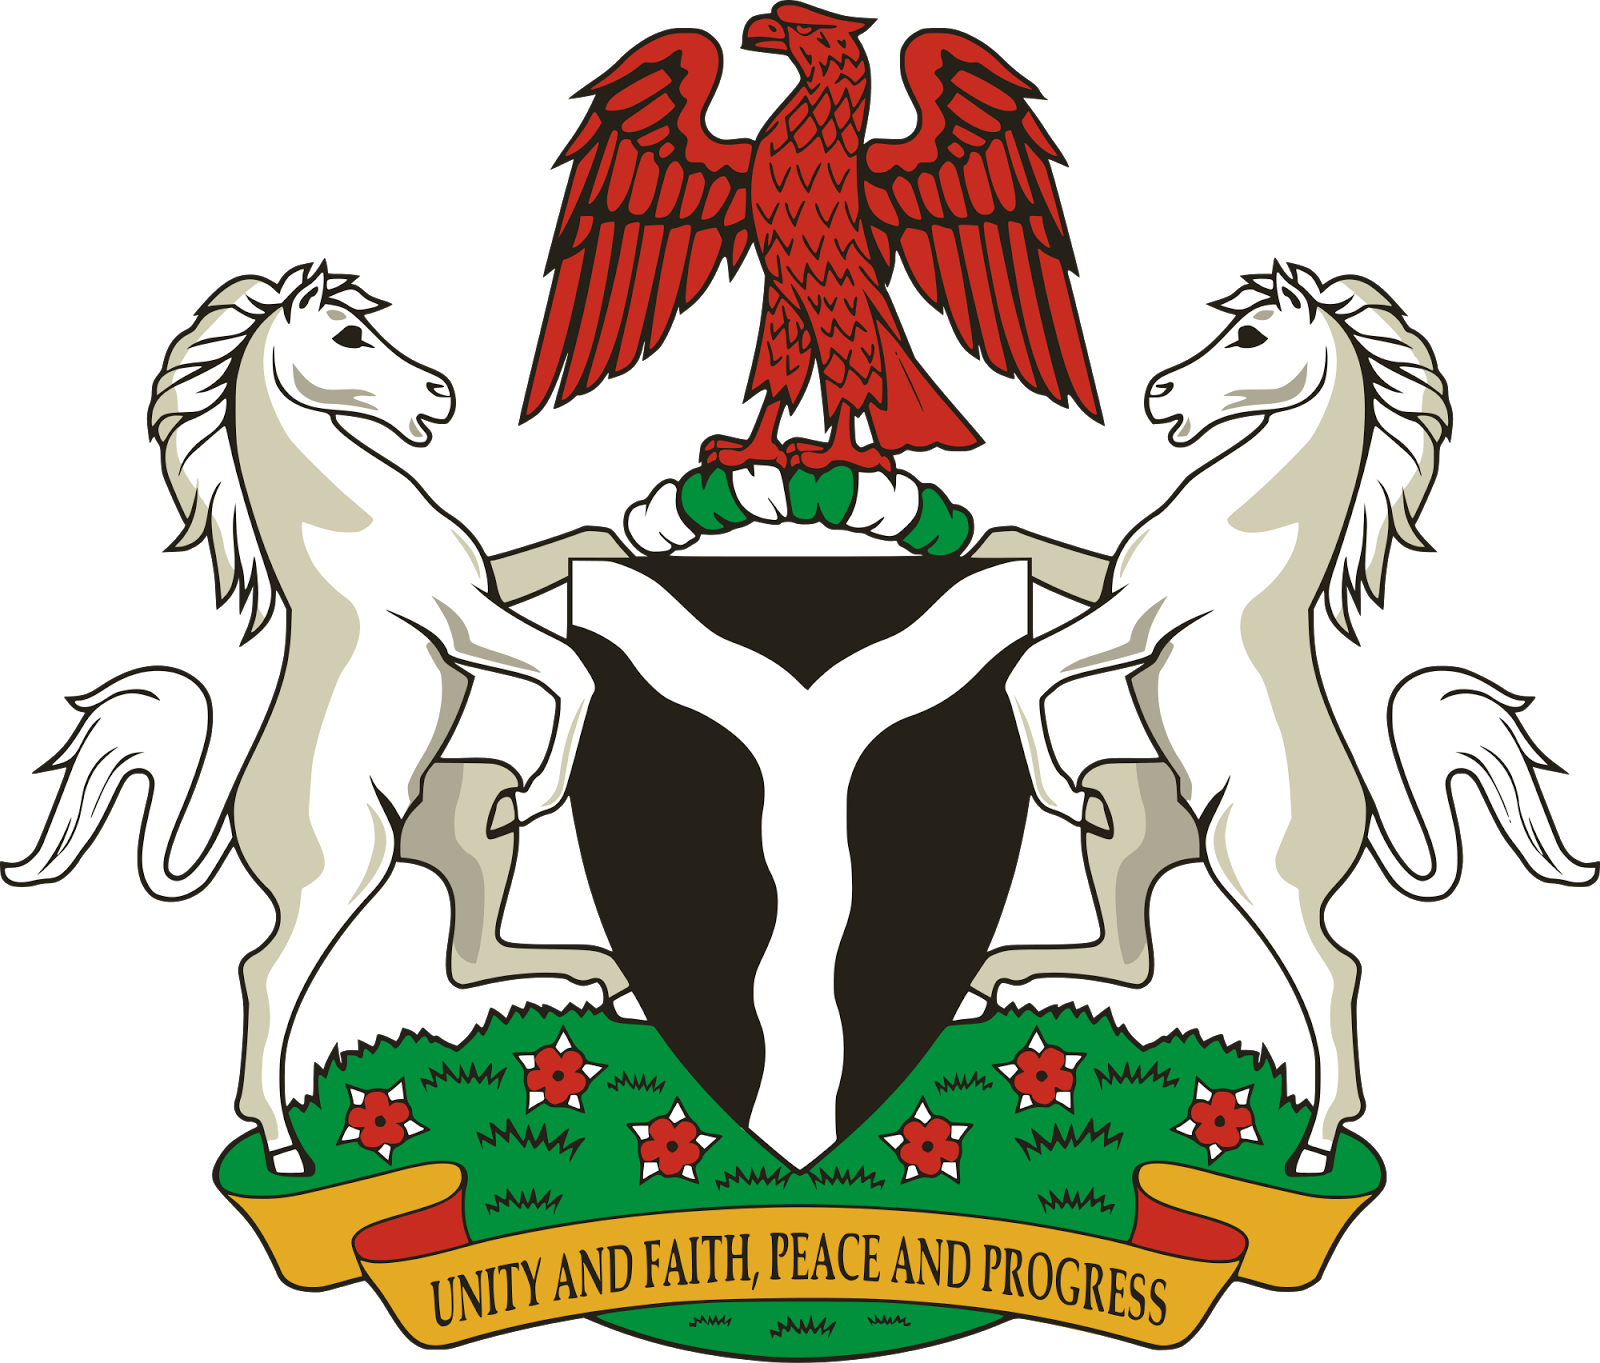 The Coat of arms of Nigeria - FG Announce Whistleblowing Programme!, Whistleblowers to Get 5% Reward of Recovered Loots